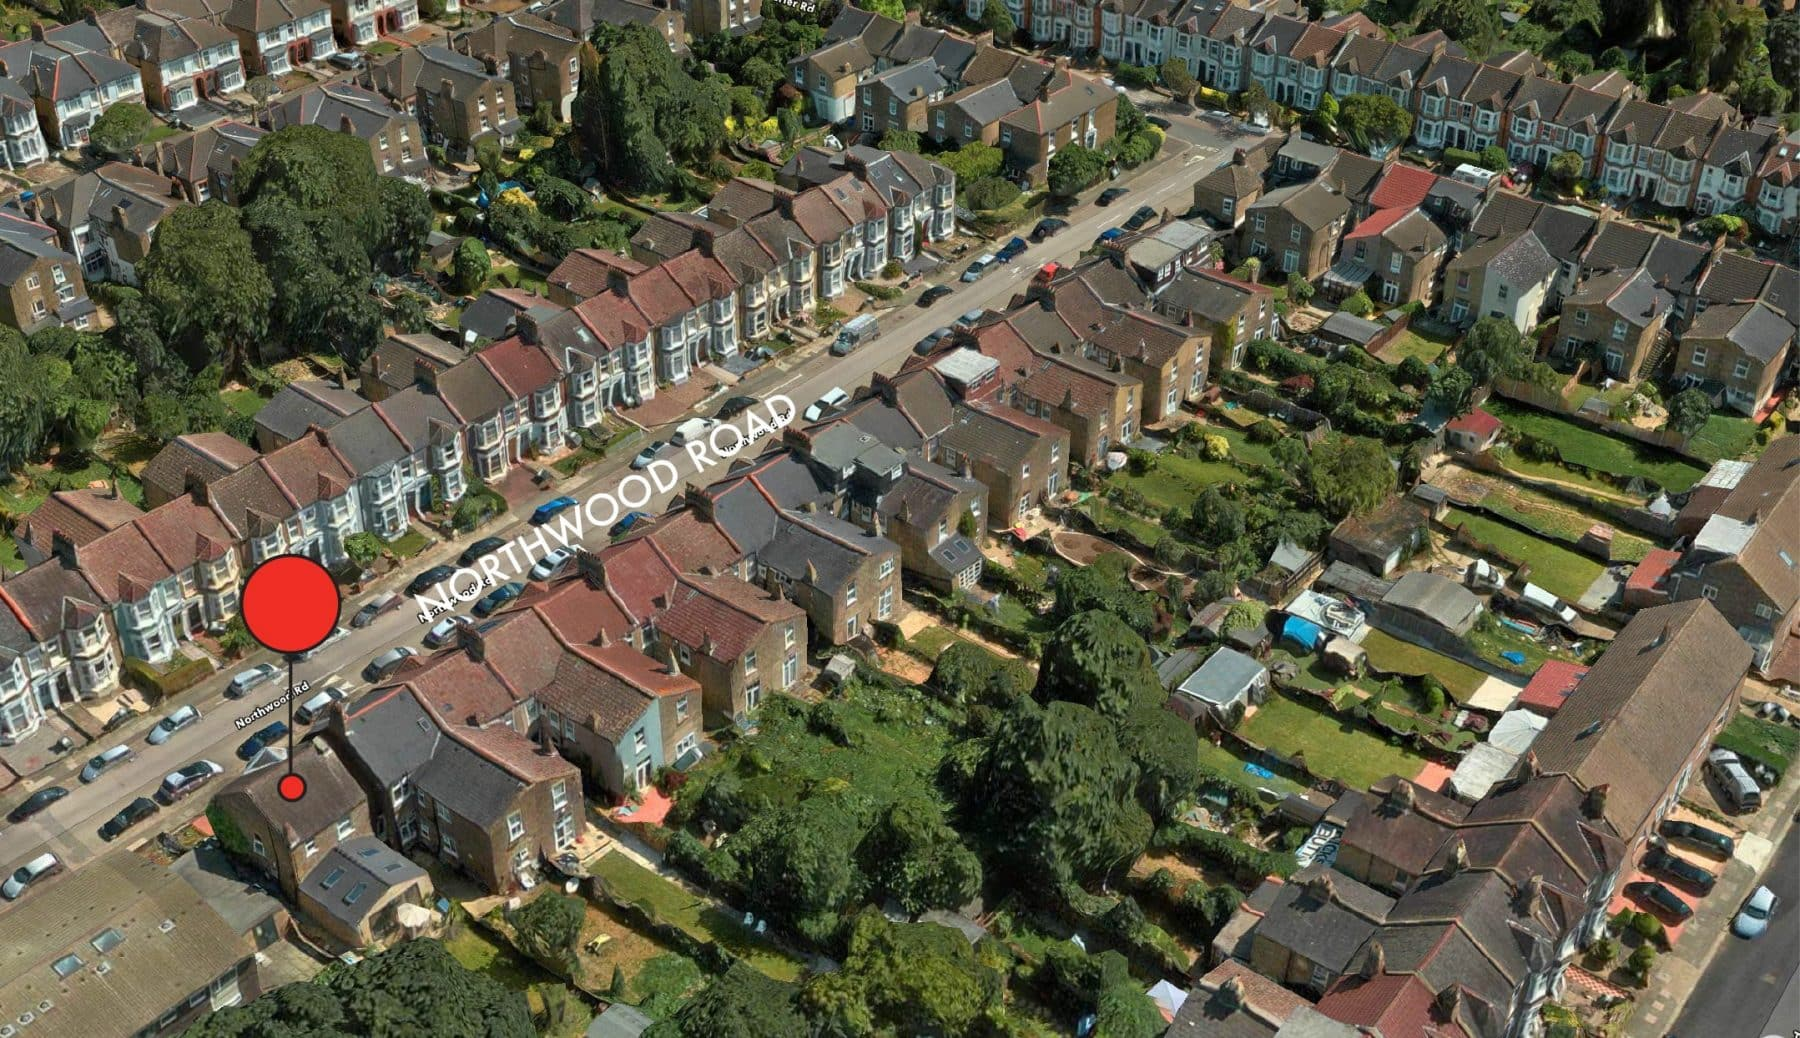 Aerial view of terraced houses with dormer lofts in south london